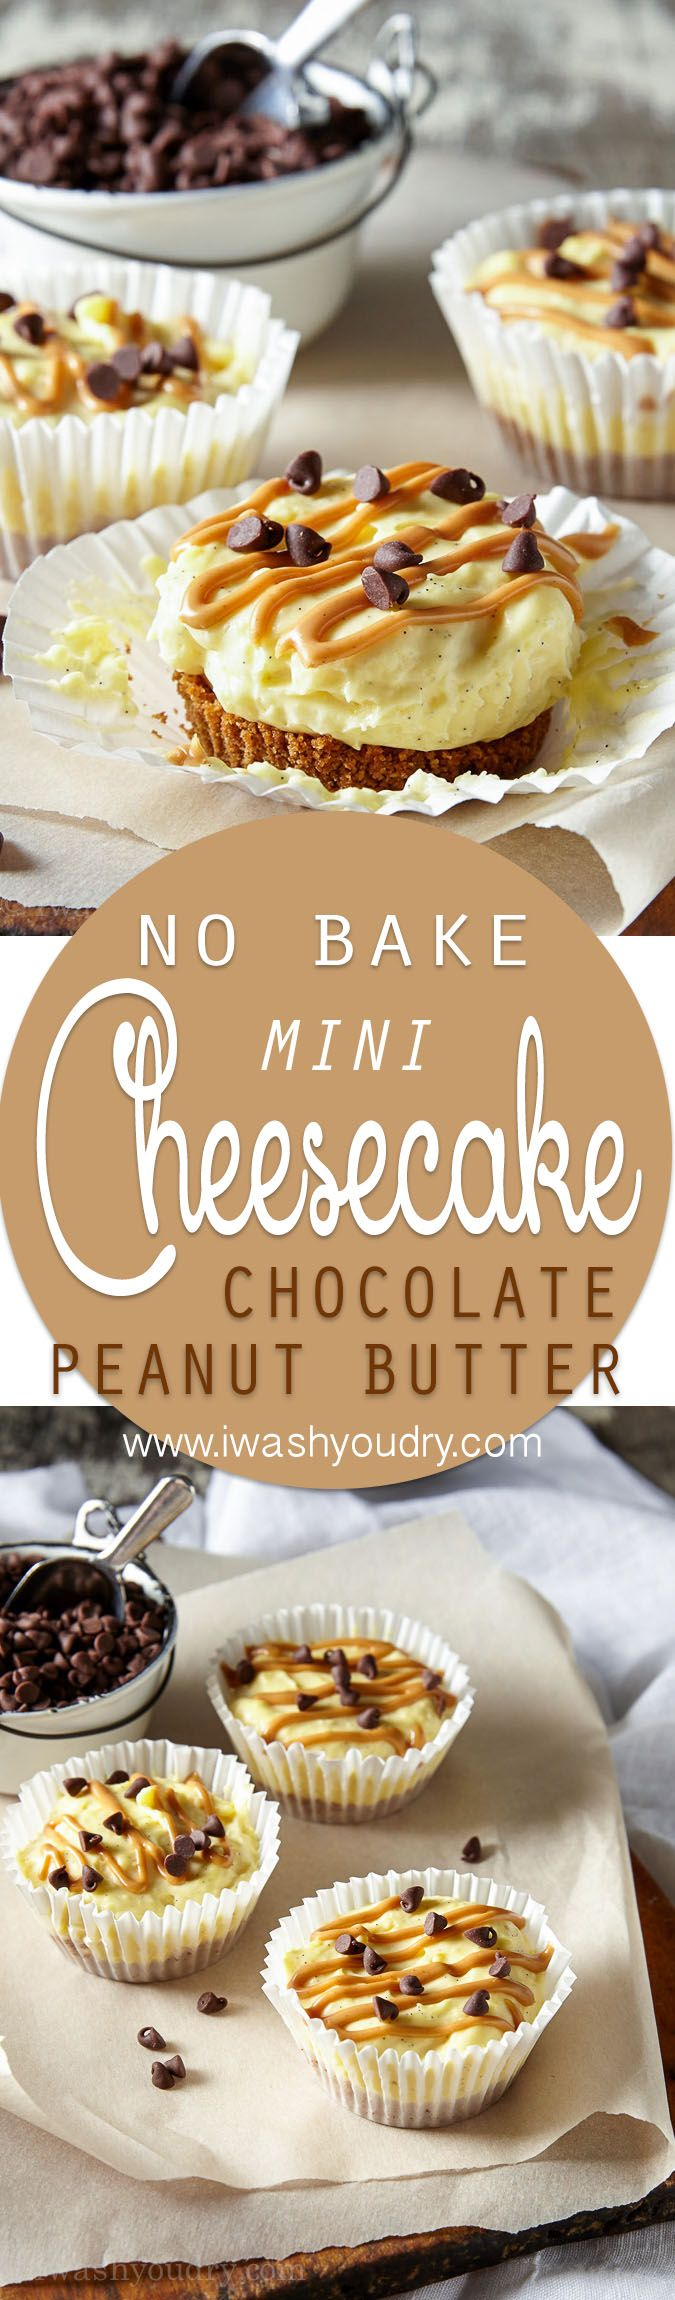 These Mini No Bake Chocolate Peanut Butter Cheesecakes have a Reese's Puffs cereal crust with a creamy vanilla bean cheesecake and a swirl of peanut butter on top. So easy and totally delicious!